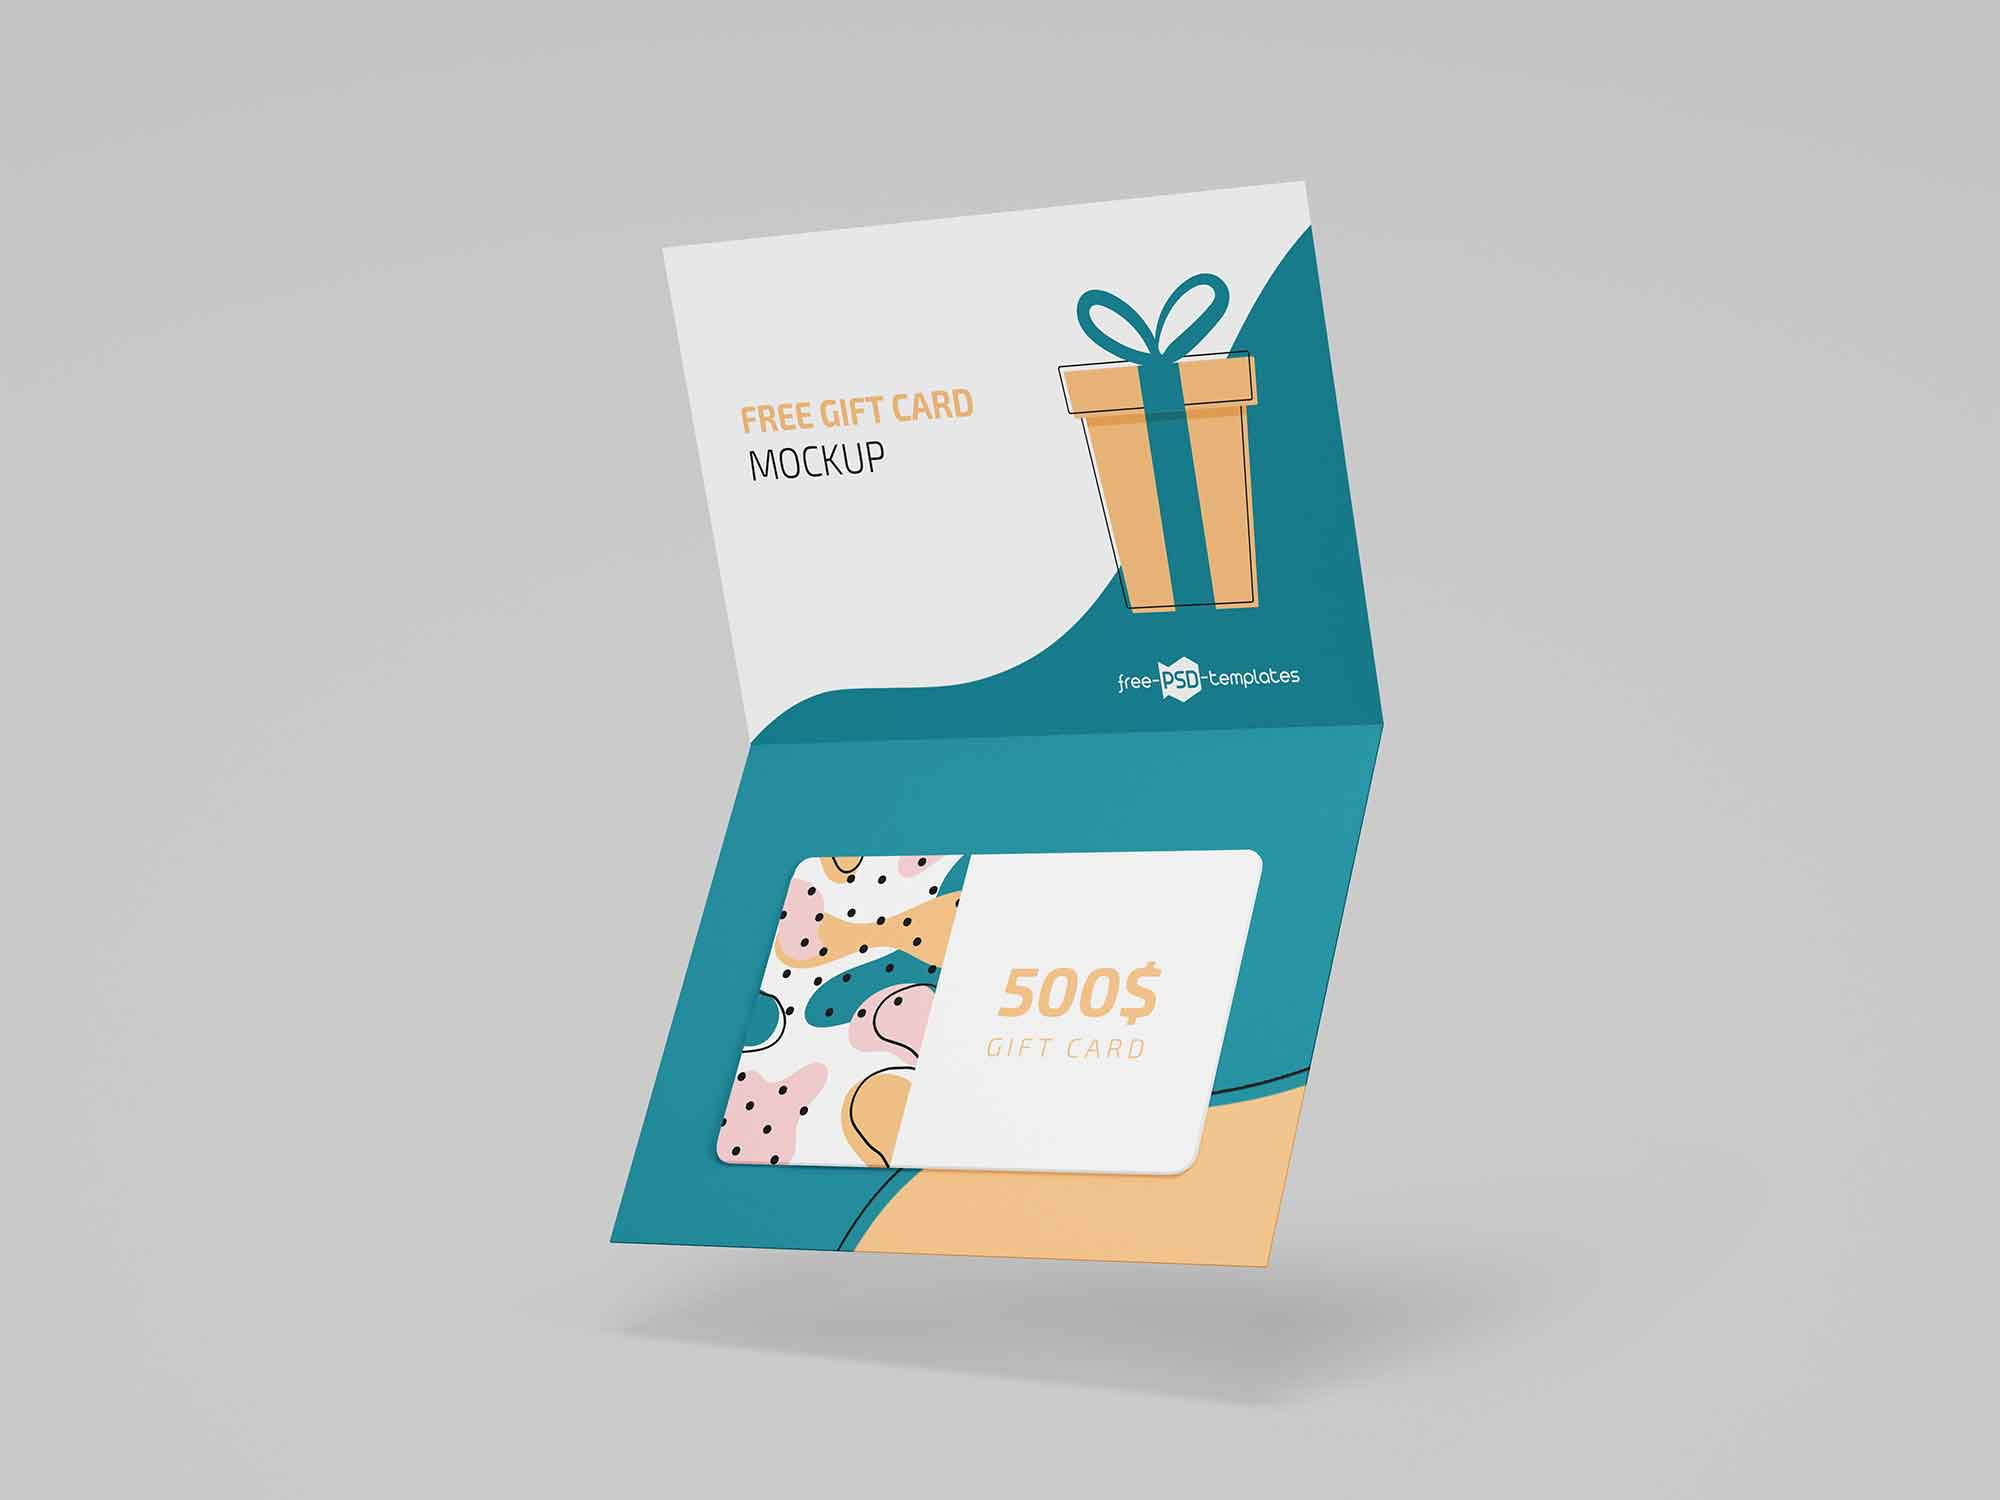 004 Formidable Gift Card Template Psd High Def  Christma Photoshop Free HolderFull